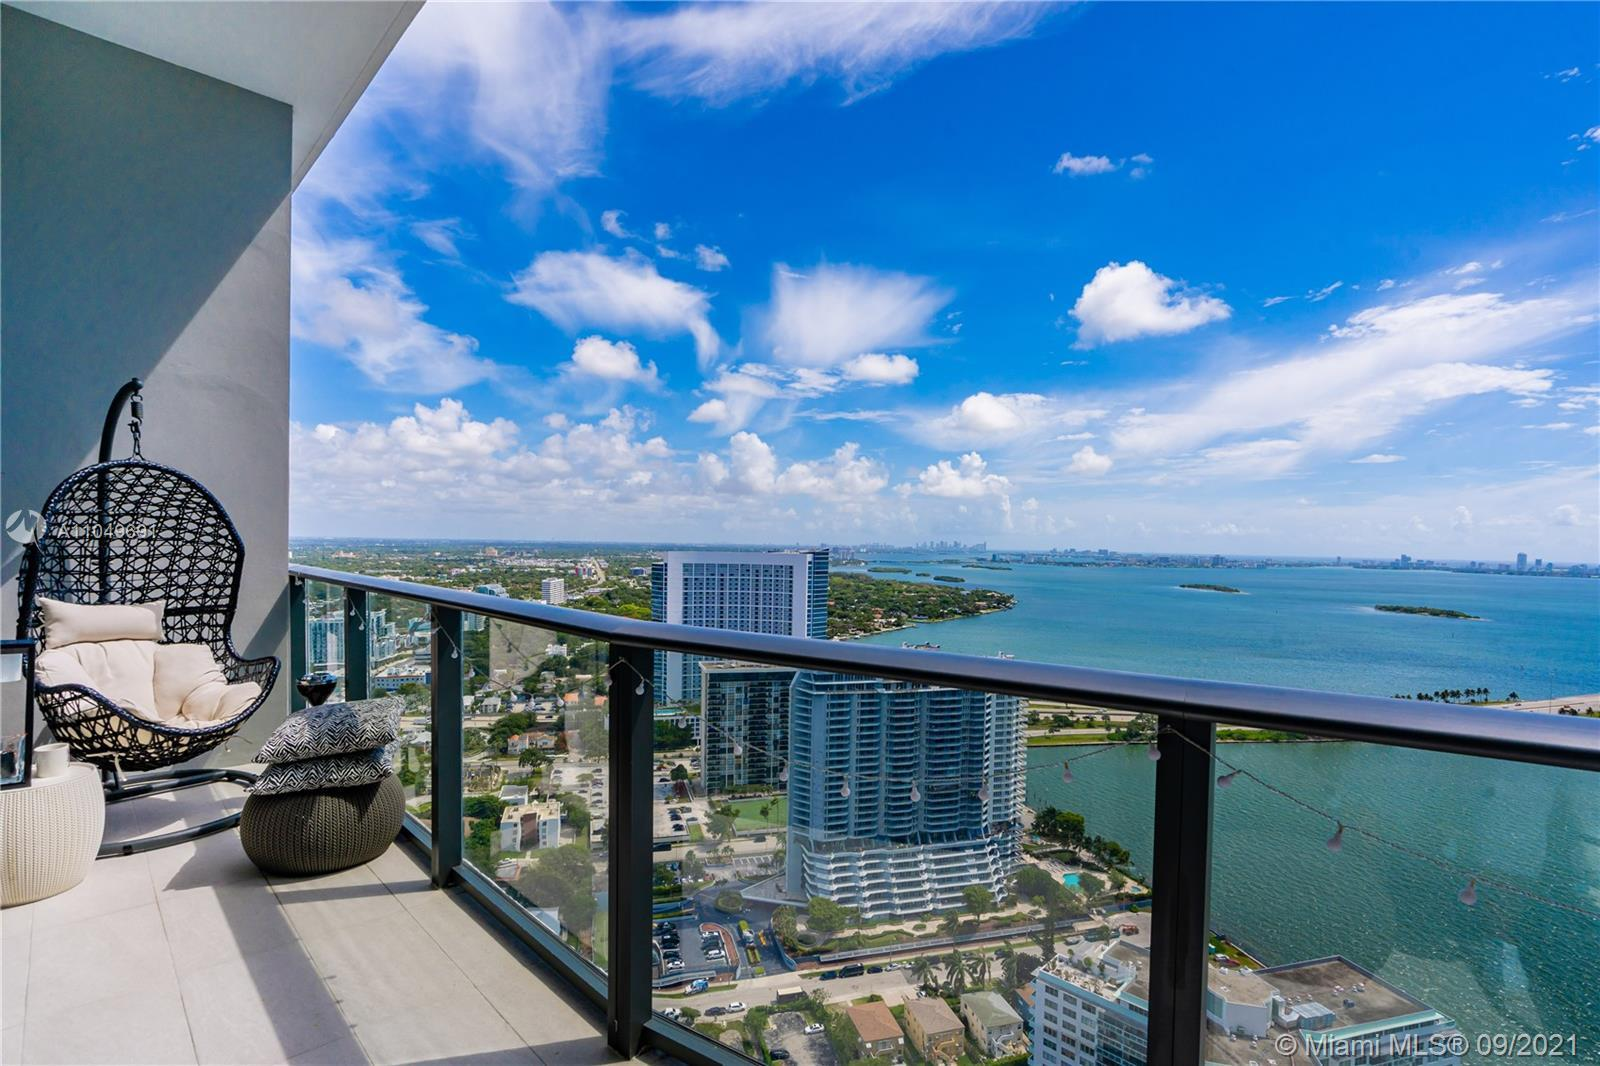 Welcome to this gorgeous Condo 3Beds 3Baths with a spectacular view of Biscayne Bay and Miami Beach.